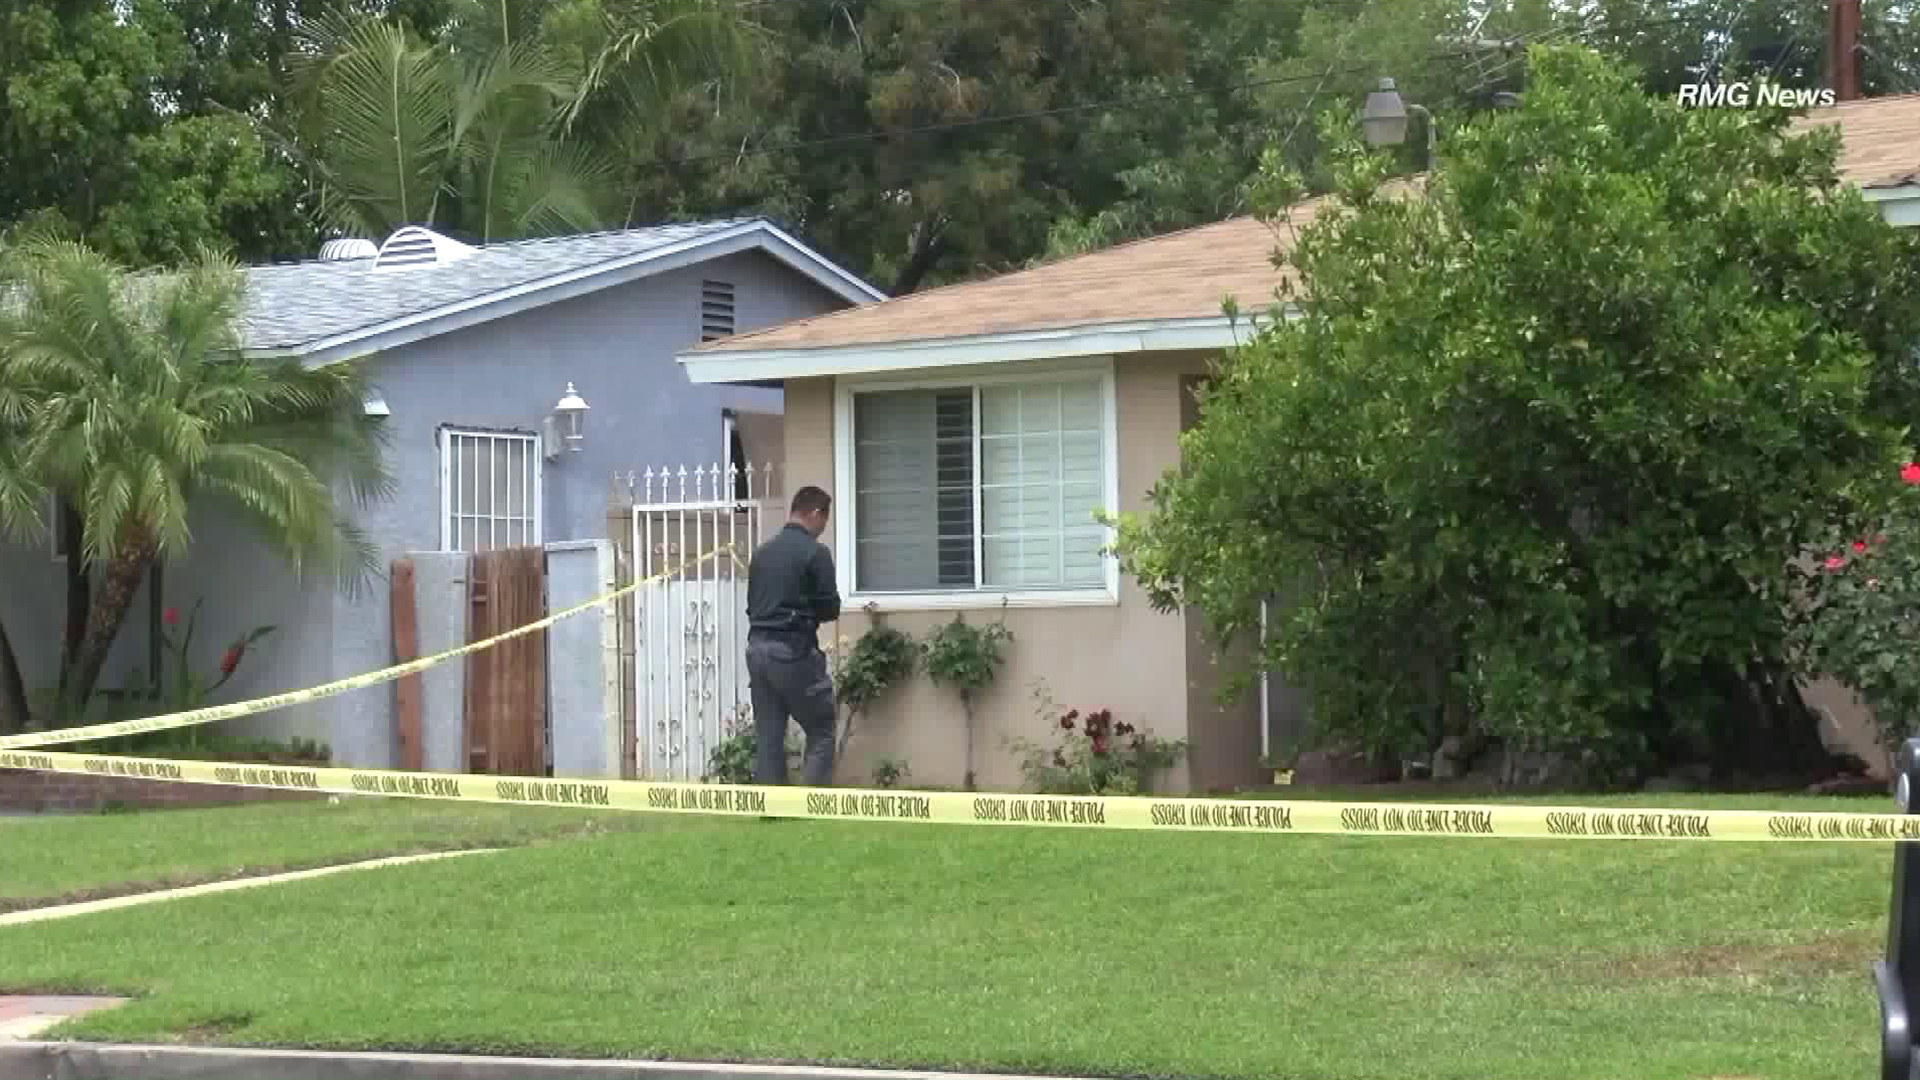 Deputies respond to a home where copious amounts of blood, but no victim, were found on May 29, 2018. (Credit: RMG News)